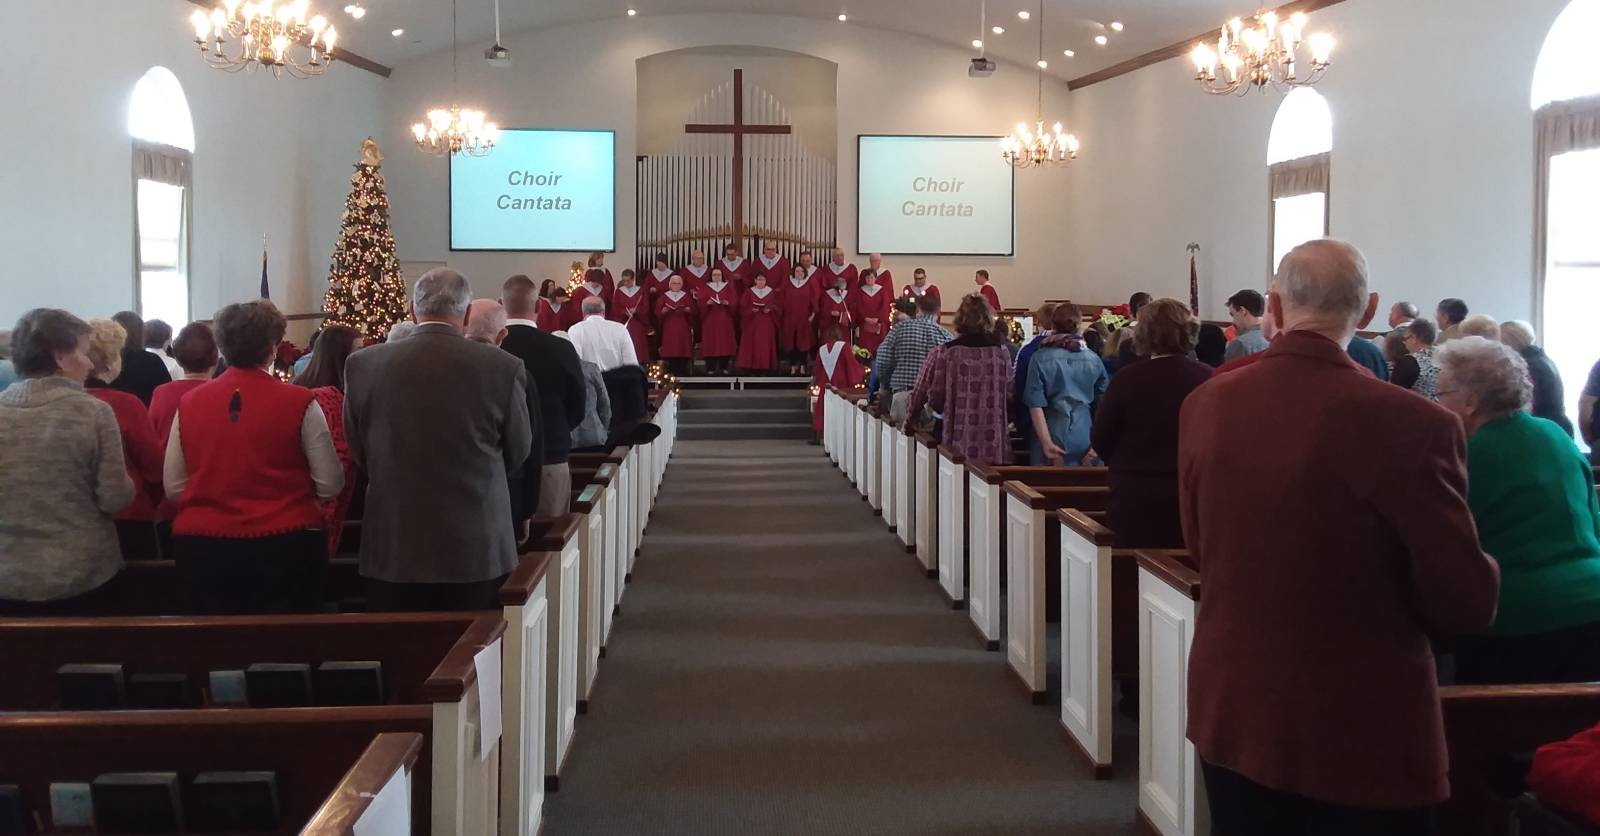 The choir performs a Christmas cantata at the Paoli United Methodist Church.